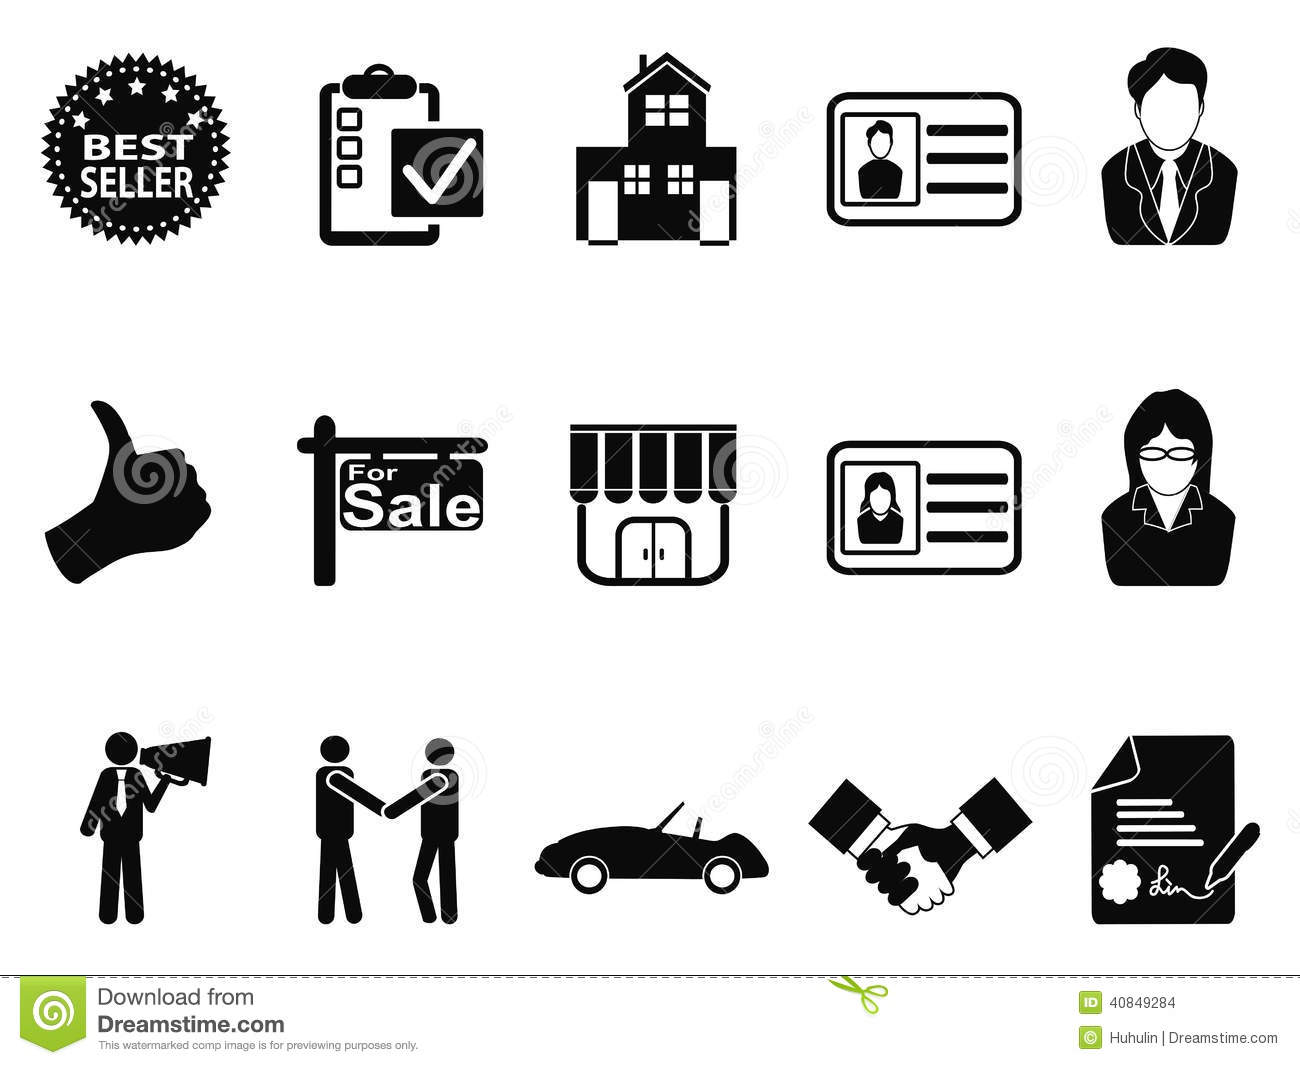 Unlimited Auto Sales >> Sales icon set stock vector. Illustration of megaphone - 40849284